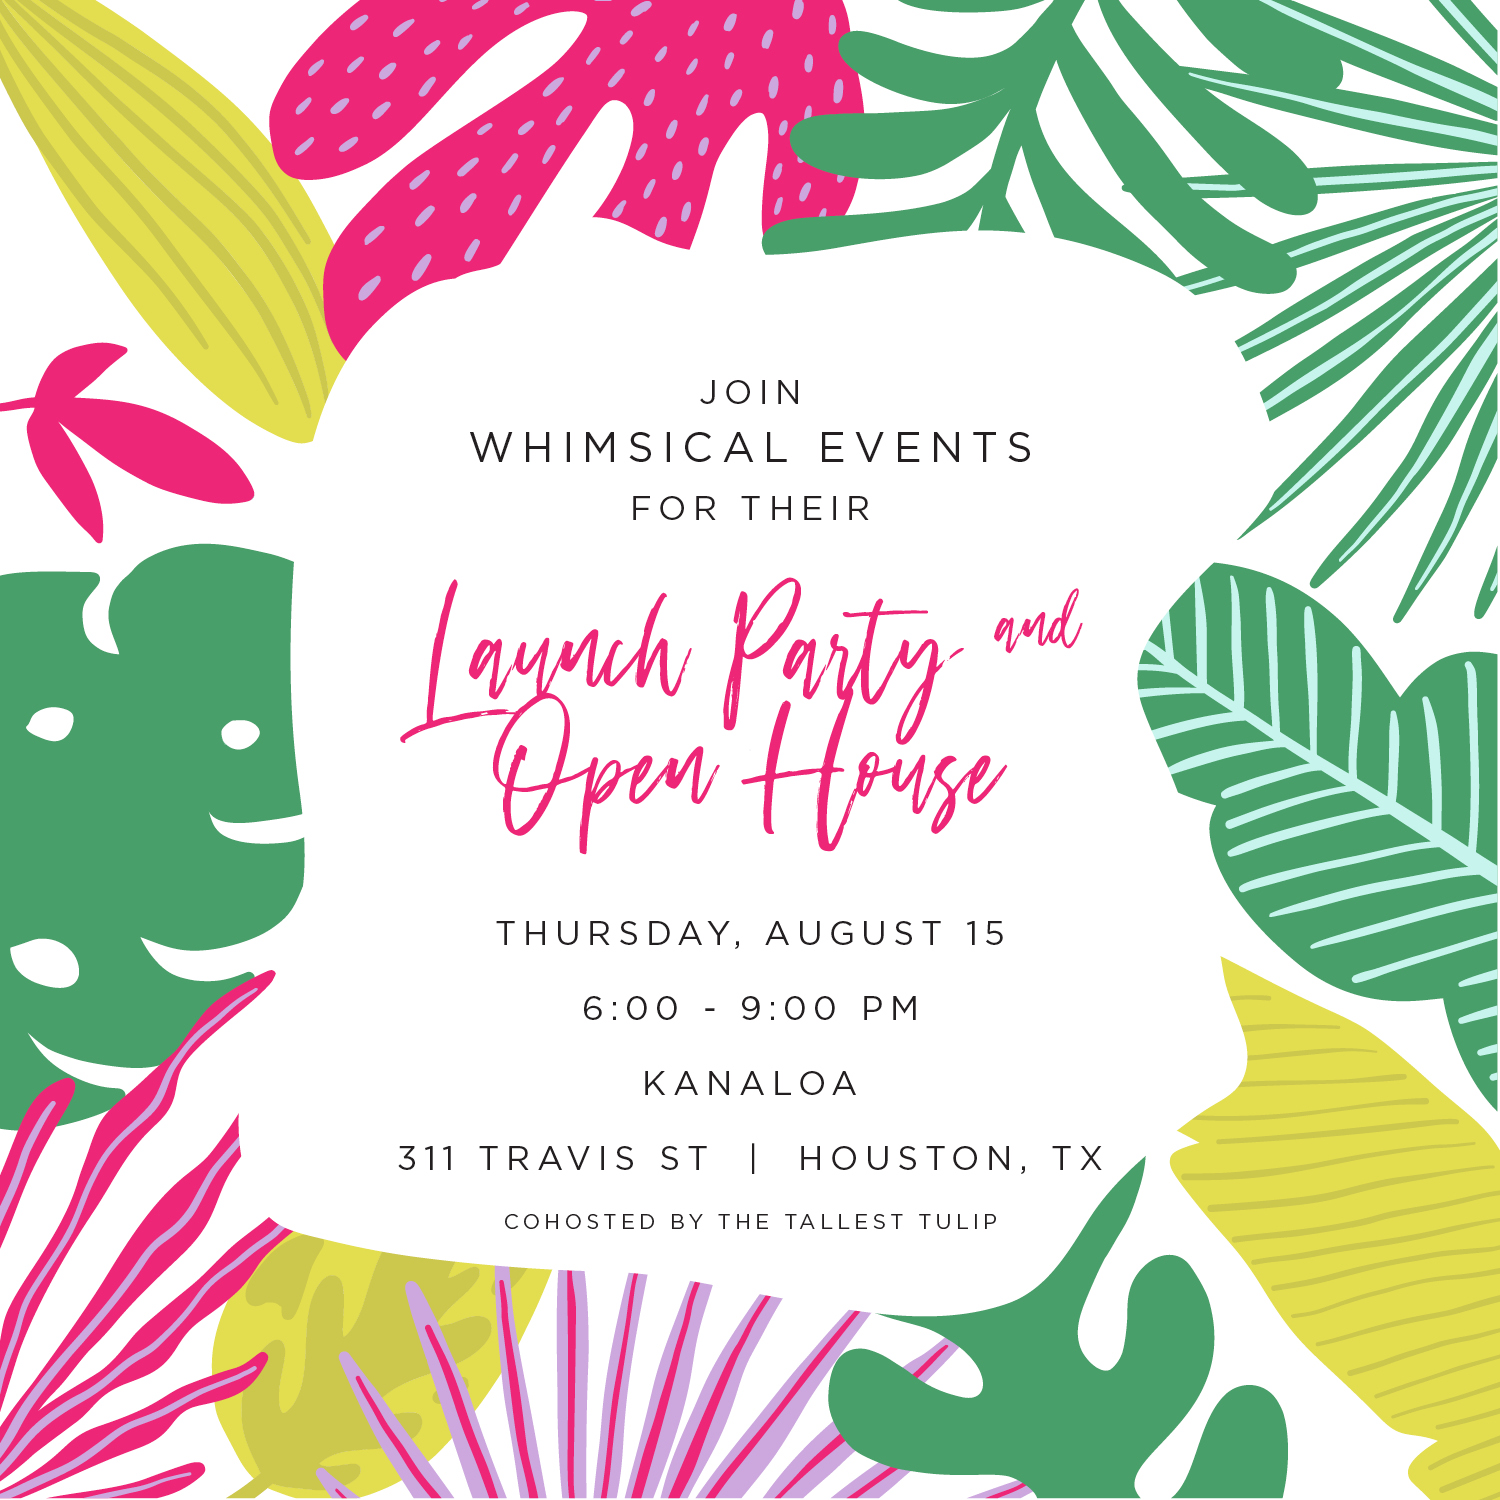 whimsical events launch party